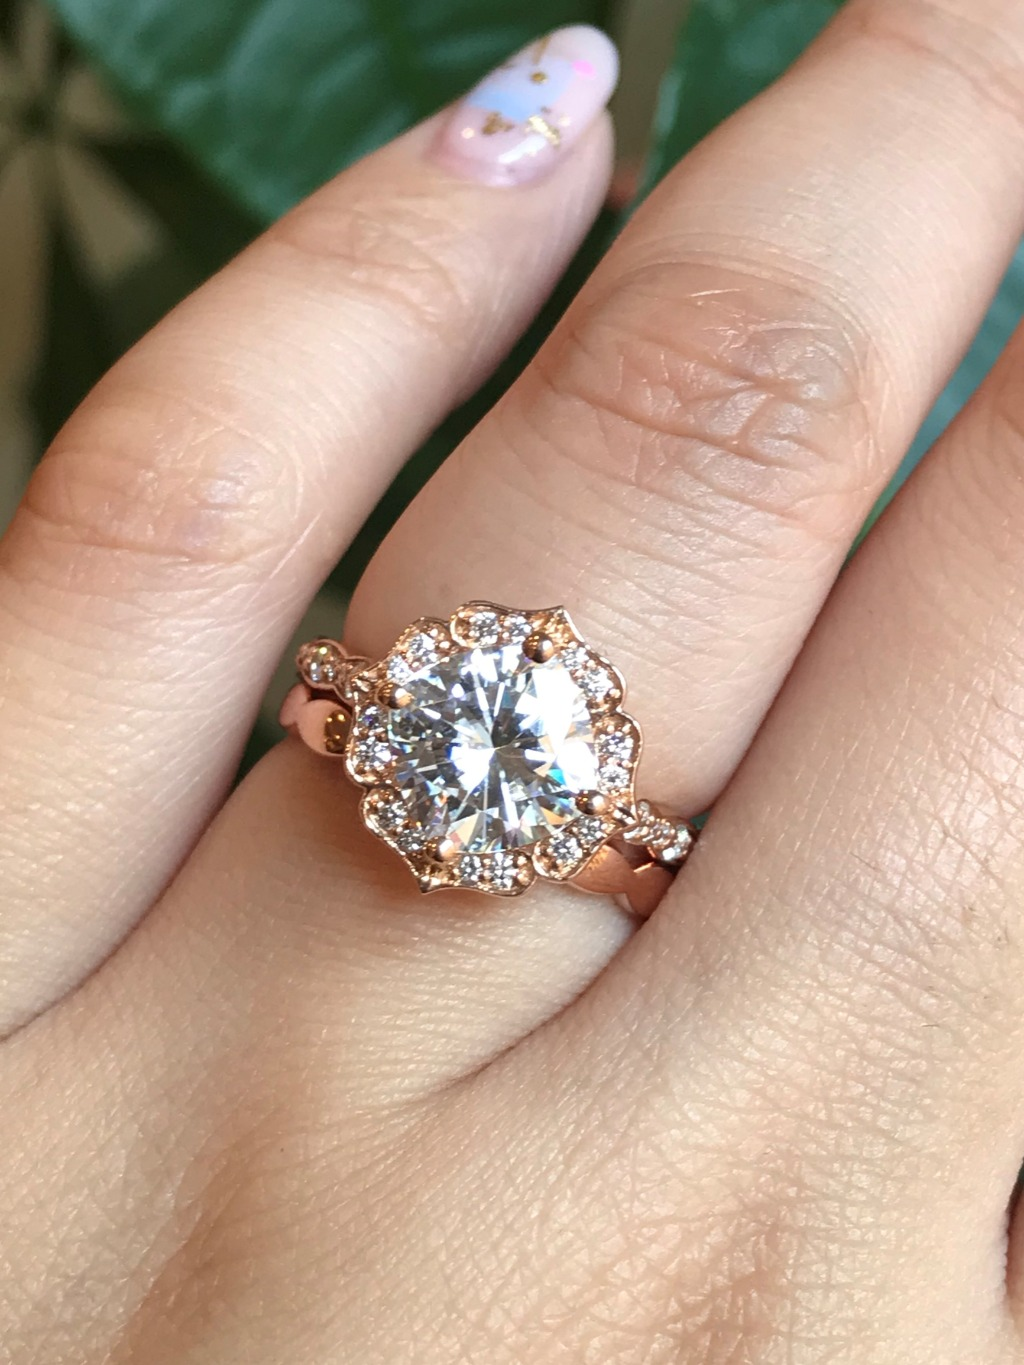 We love our Vintage Floral collection, one of our signature designs ~ This beautiful set features a Cushion Cut Moissanite in Vintage